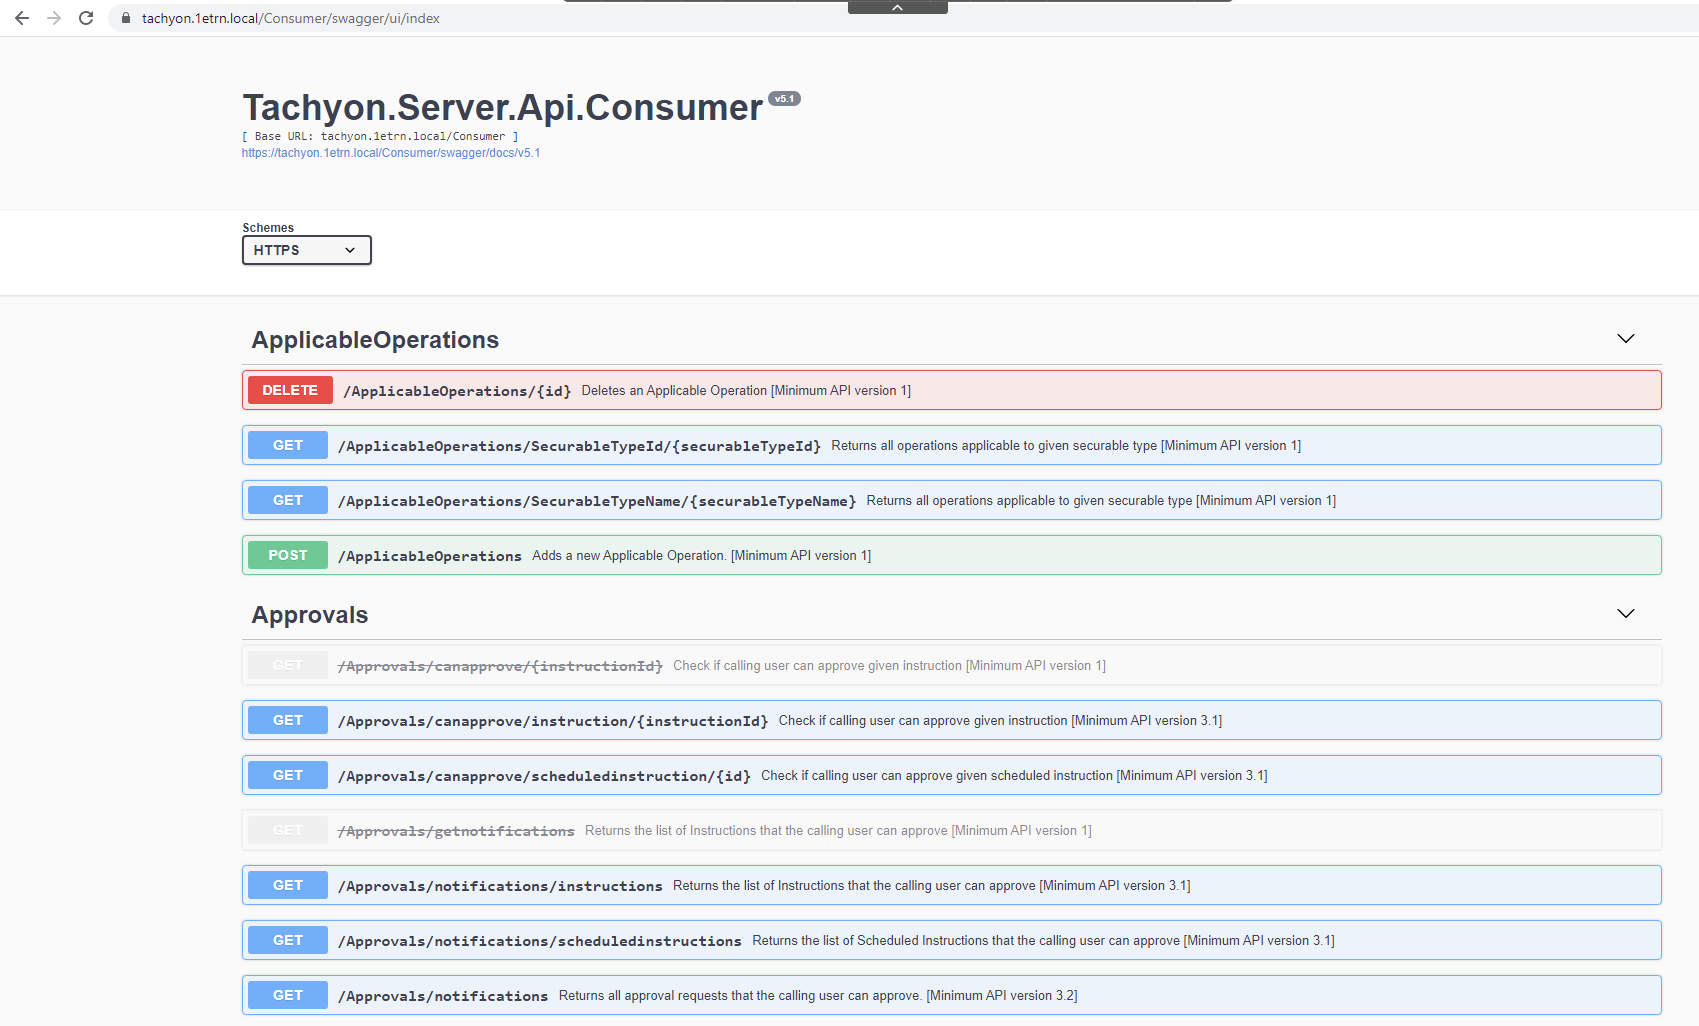 Swagger definitions for the Tachyon Consumer API